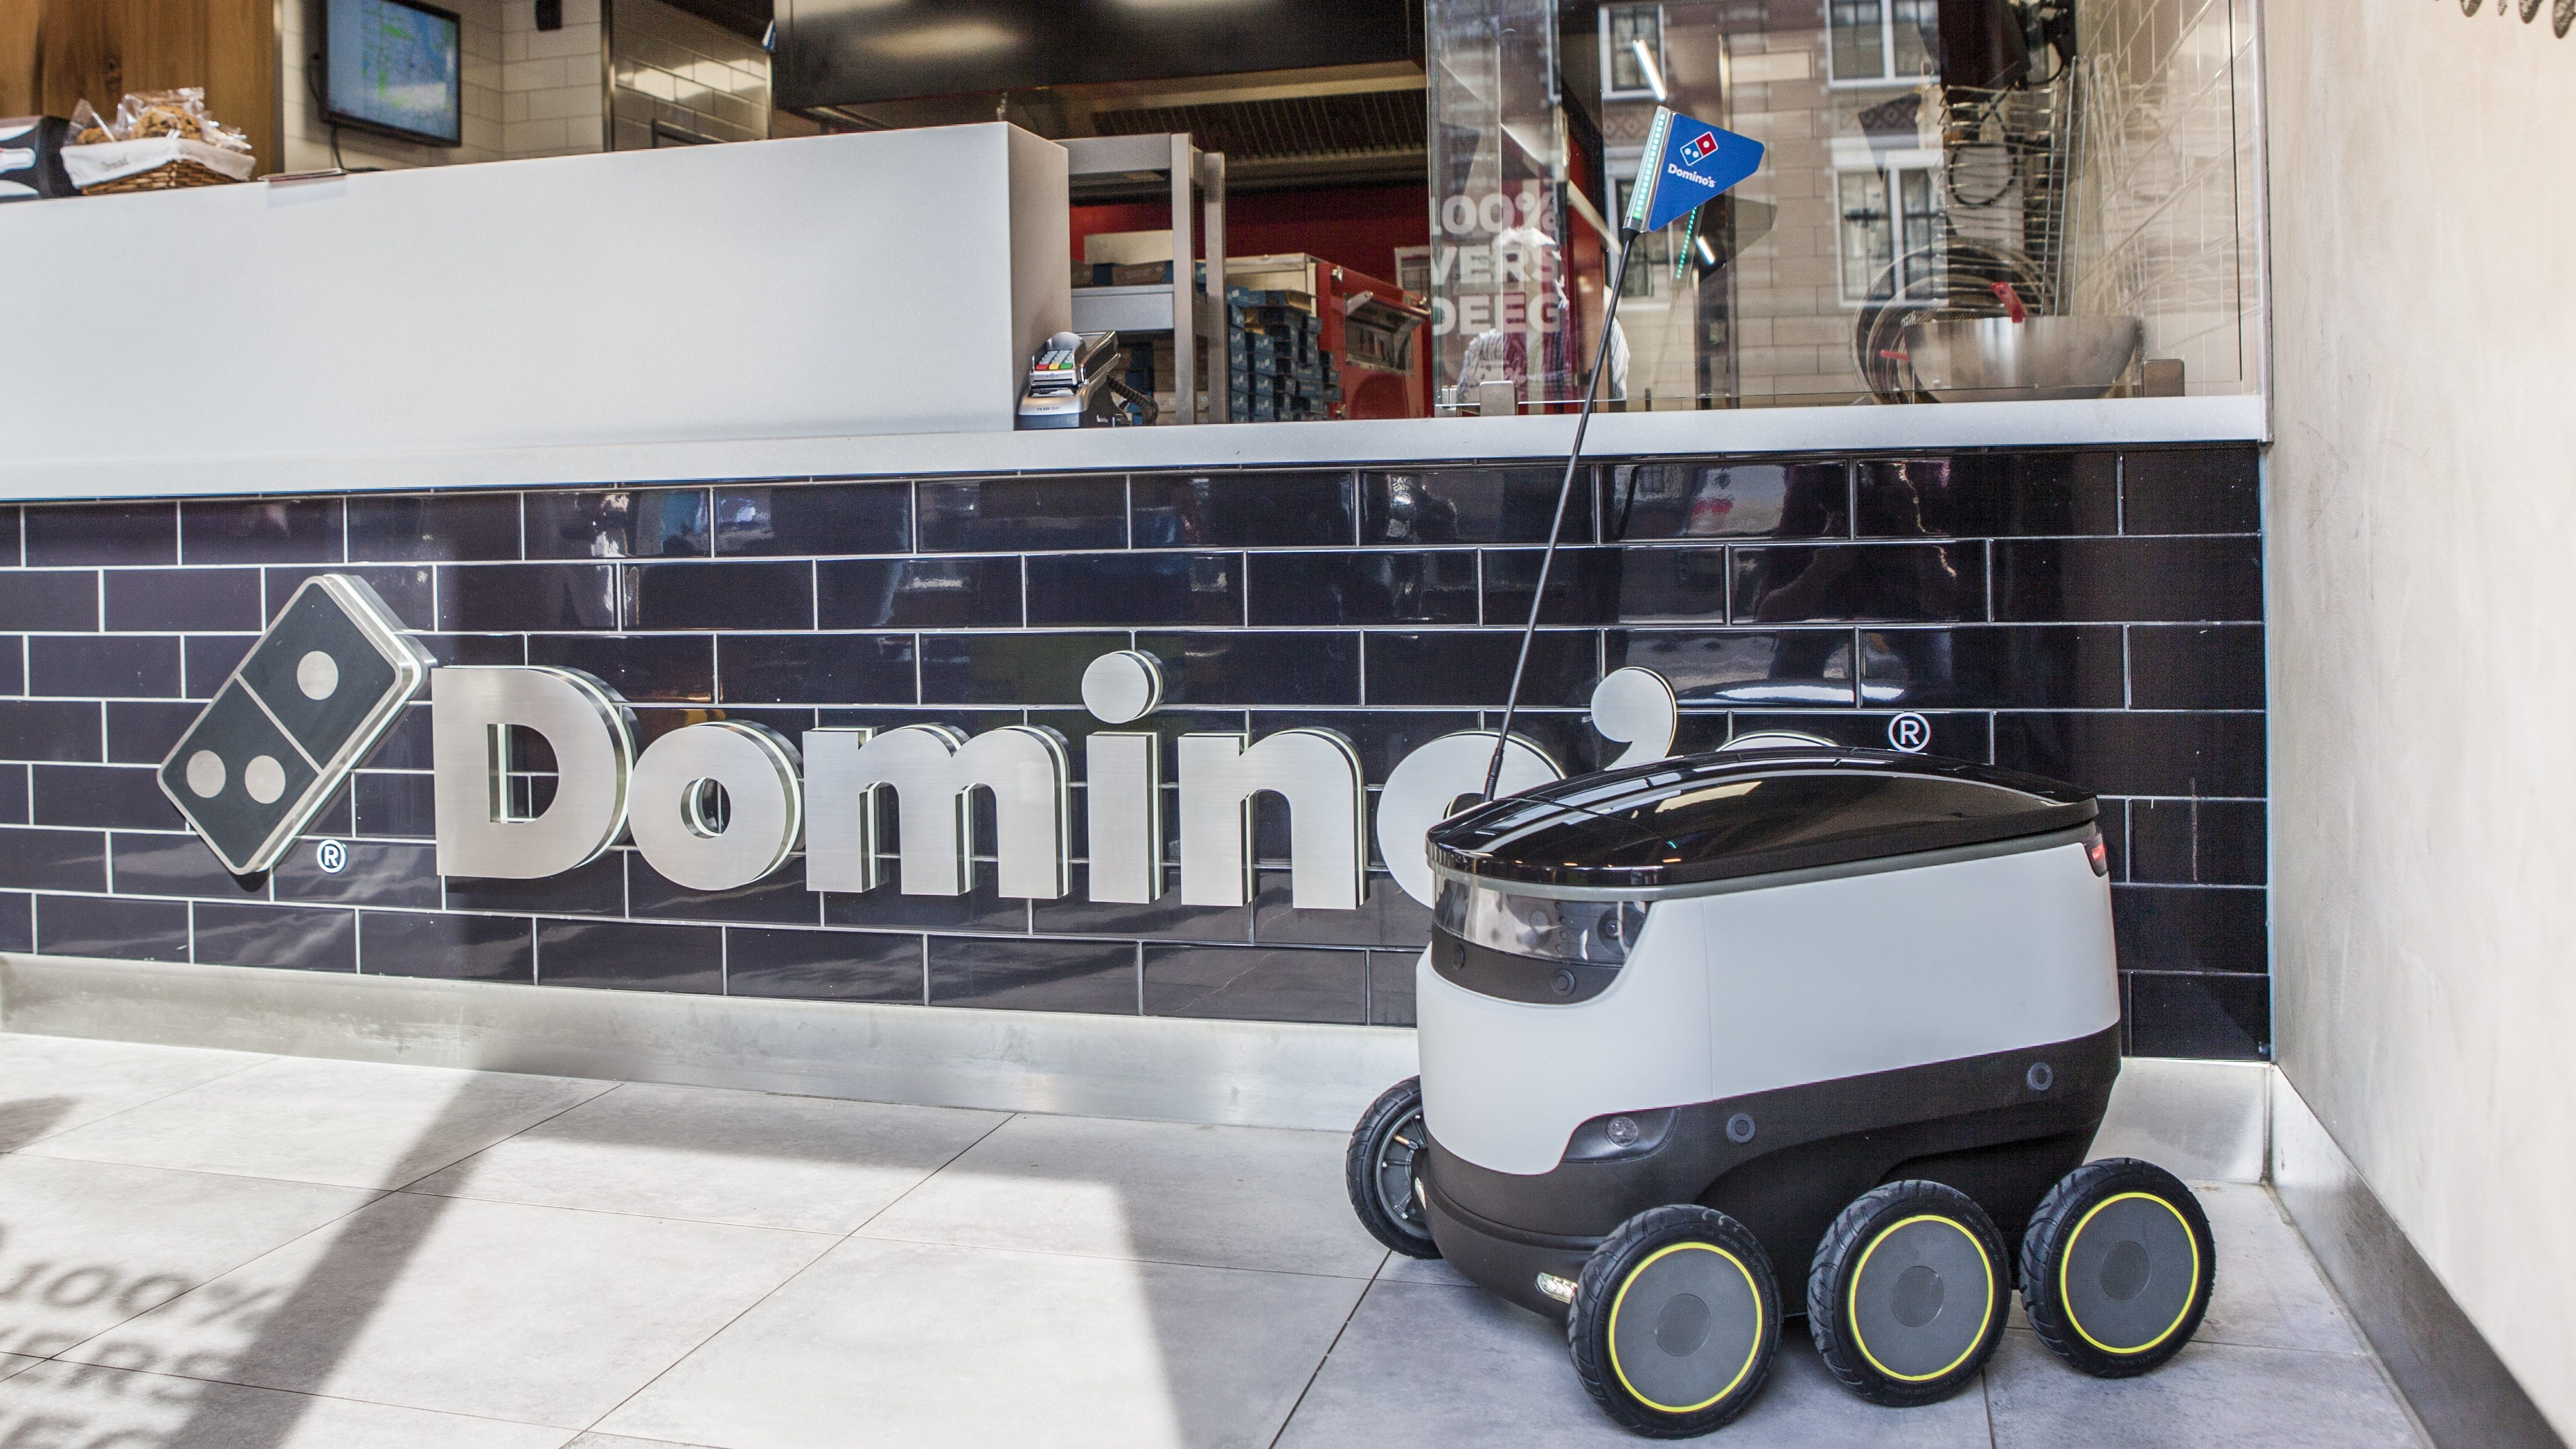 A Starship robot in front of a Domino's counter